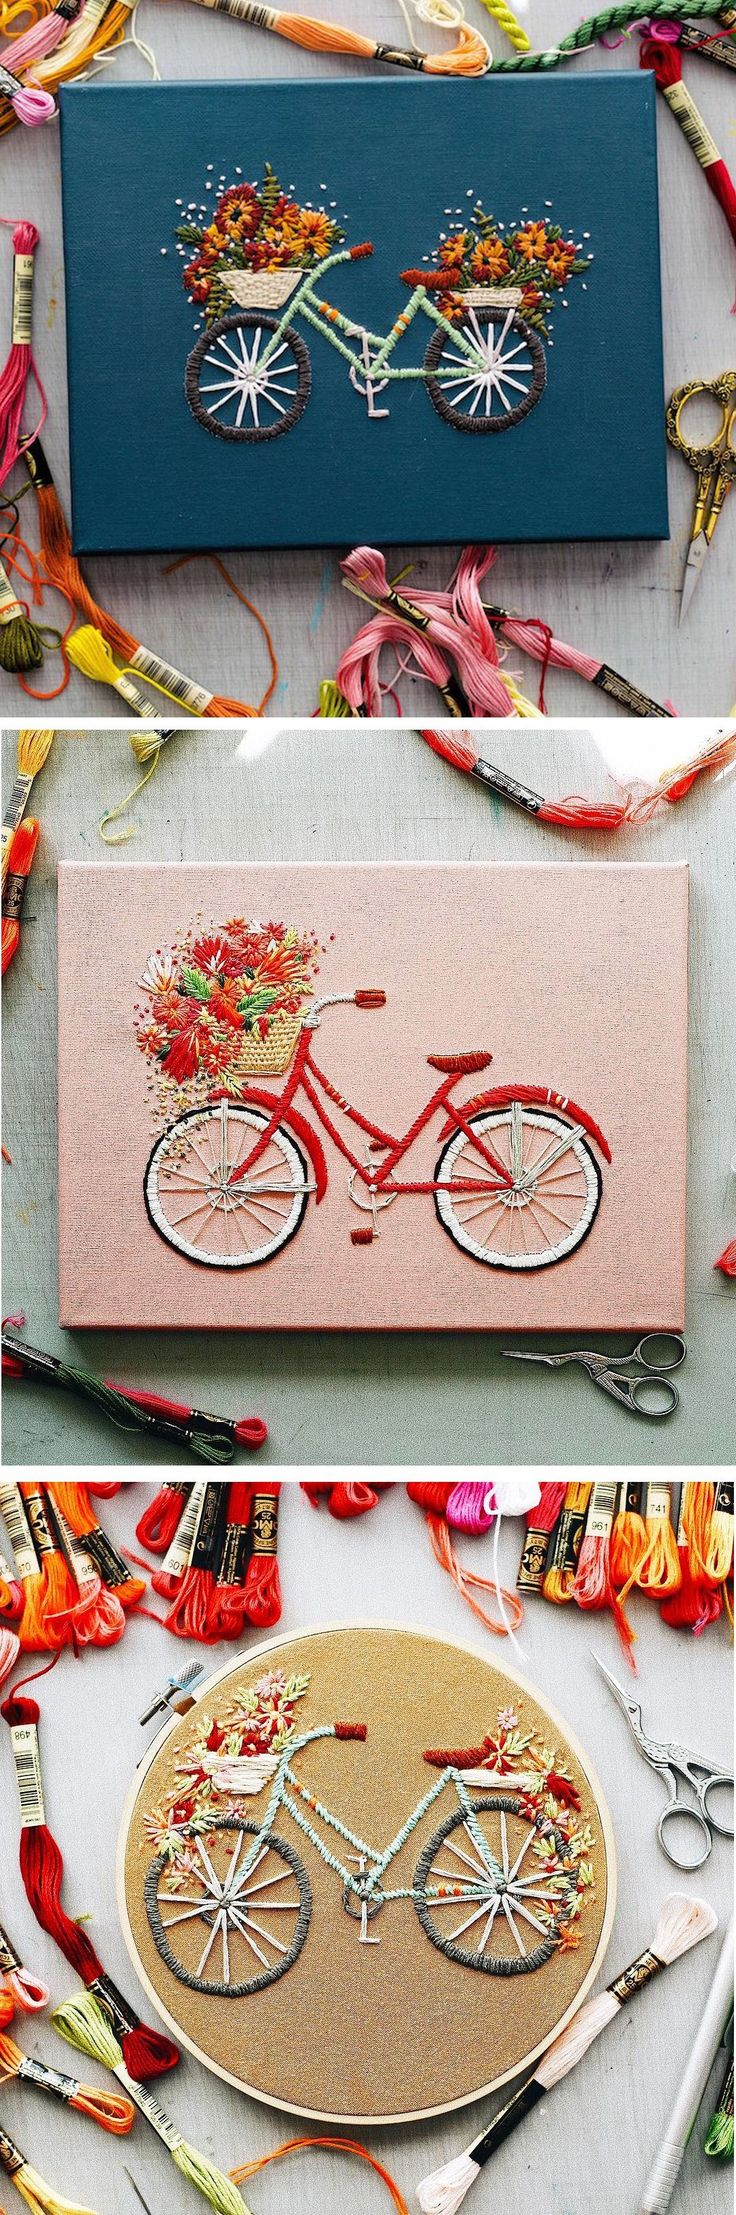 Modern Embroidery by TrueFort | bicycle embroidery | embroidery ideas | hoop art…